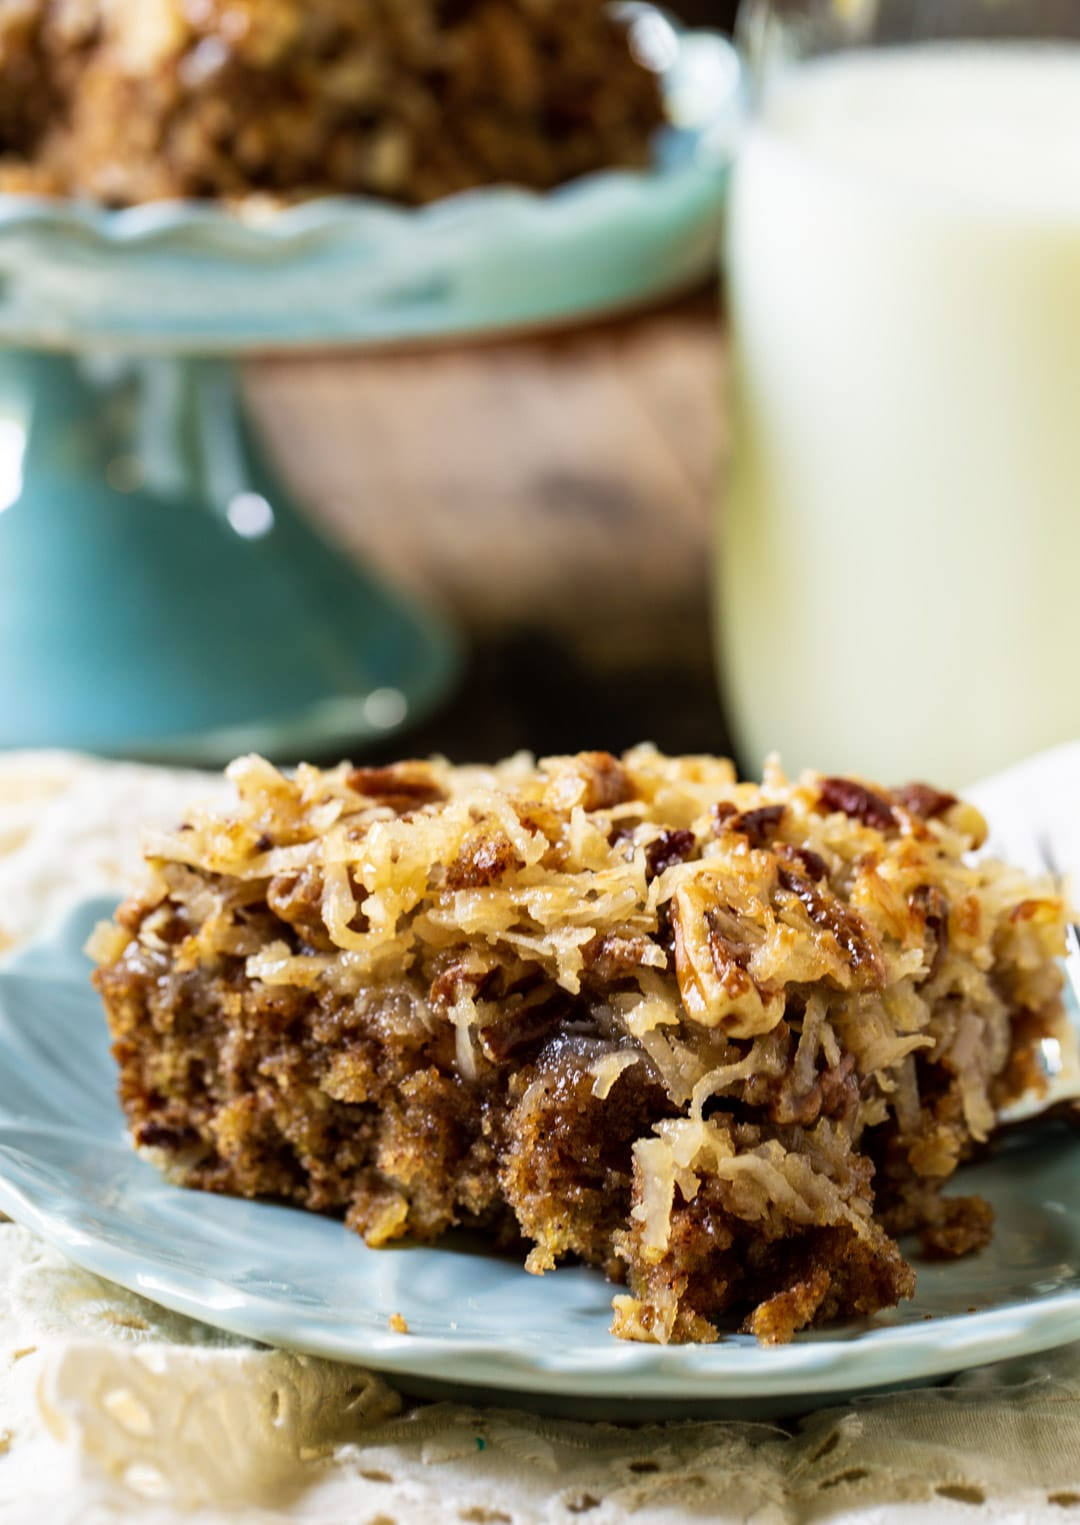 Old-Fashioned Oatmeal Cake on a blue plate.